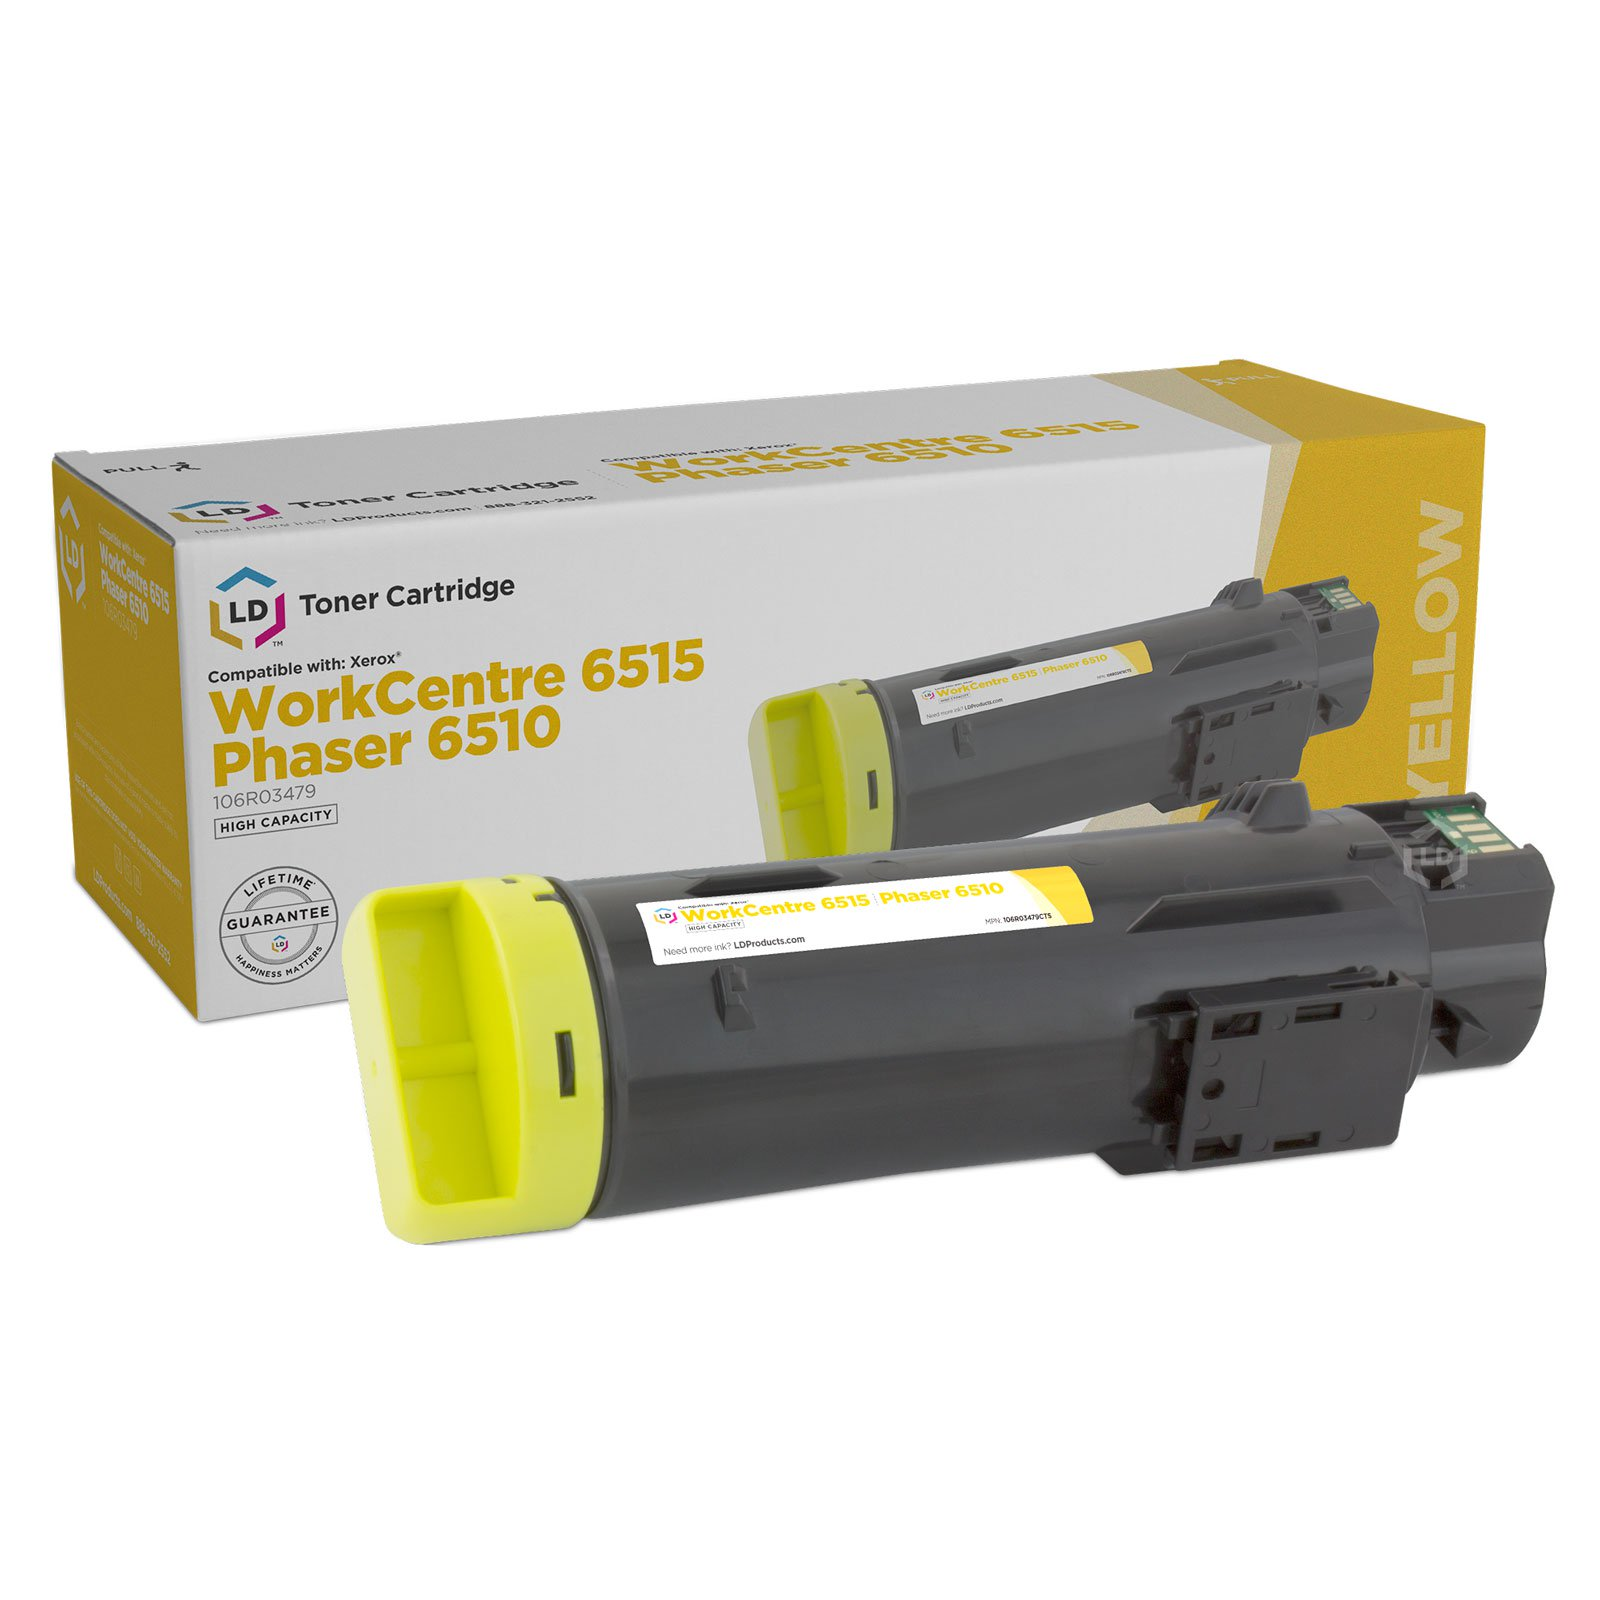 Start Compatible for Xerox Phaser 6510 Workcentre 6515 Yellow 106R03475 Toner Cartridge